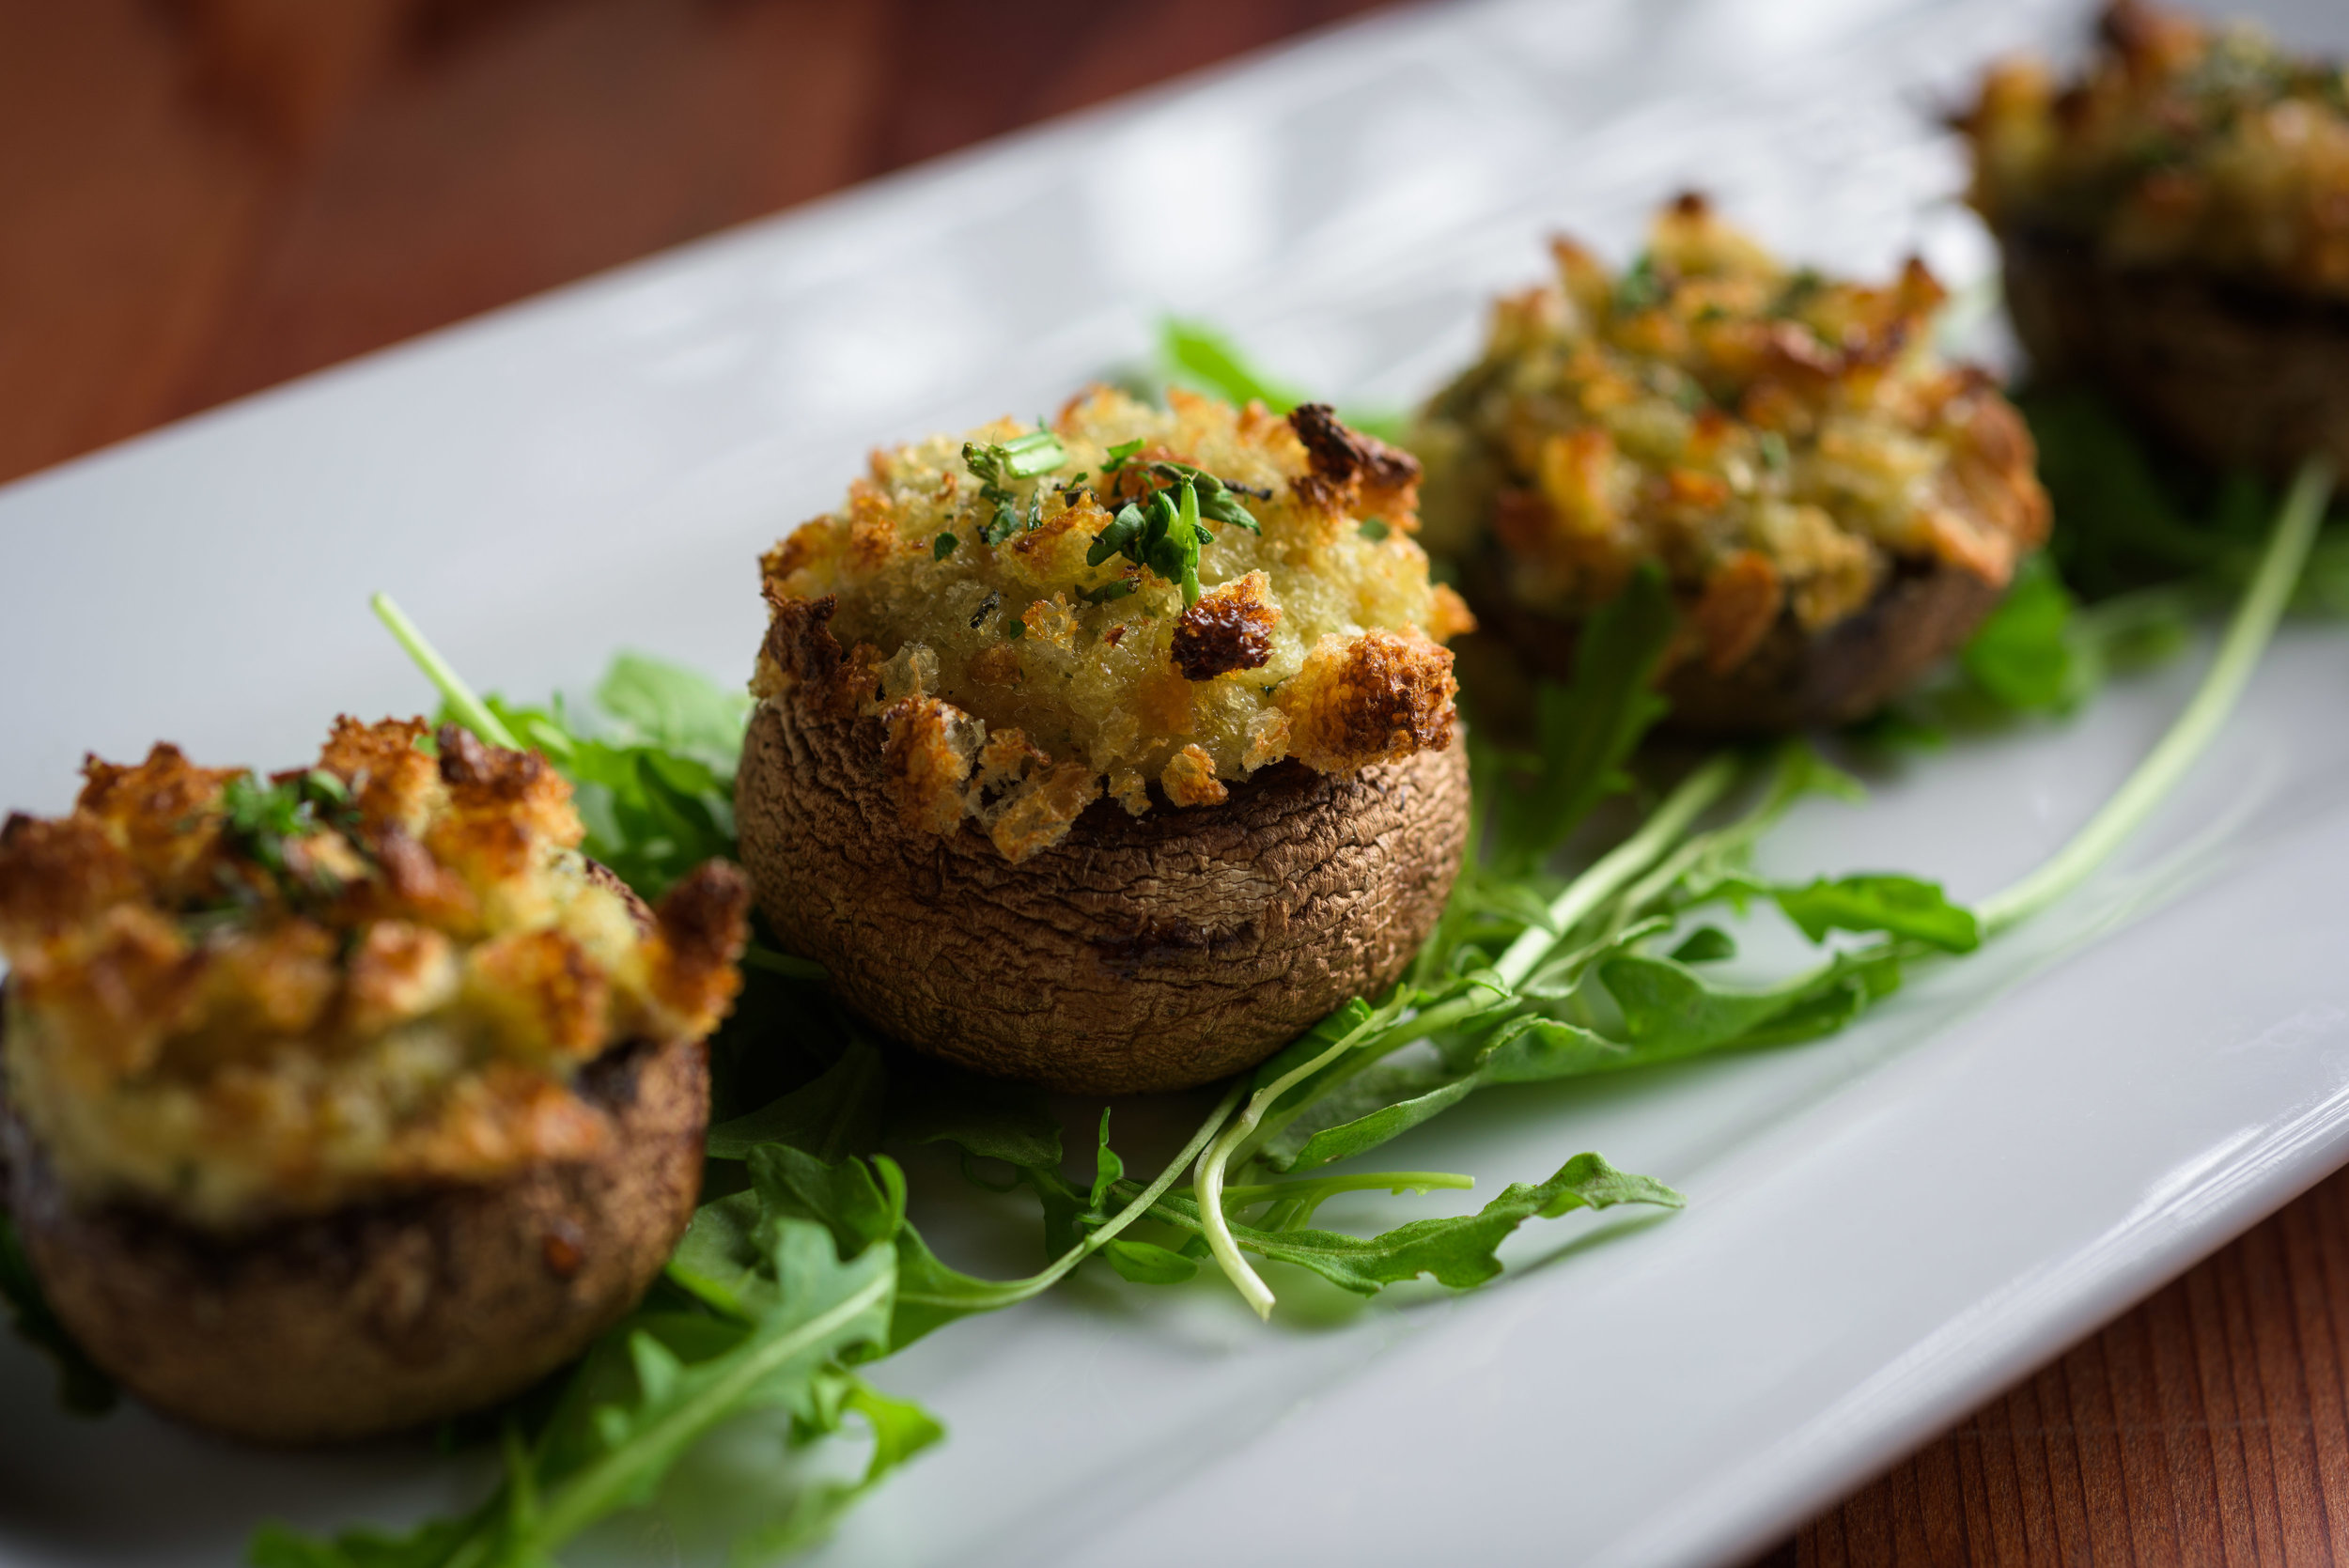 stuffed mushroom appetizer – cupertino food photos at rootstock wine bar - photos by bay area commercial photographer chris schmauch